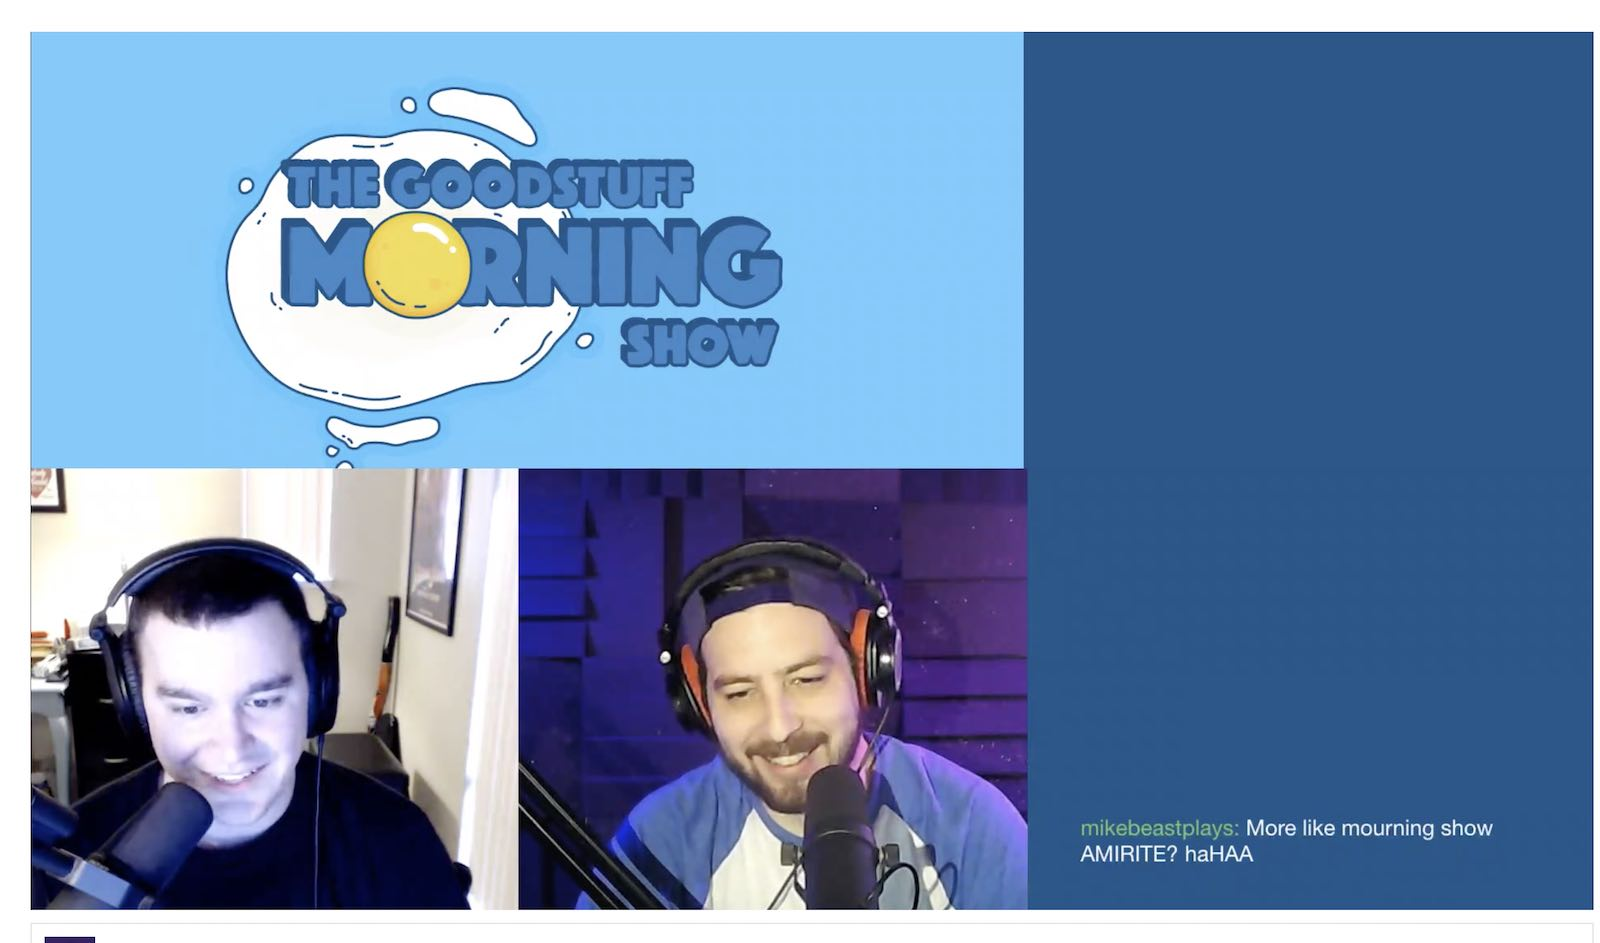 The Morning Show recording on Twitch live